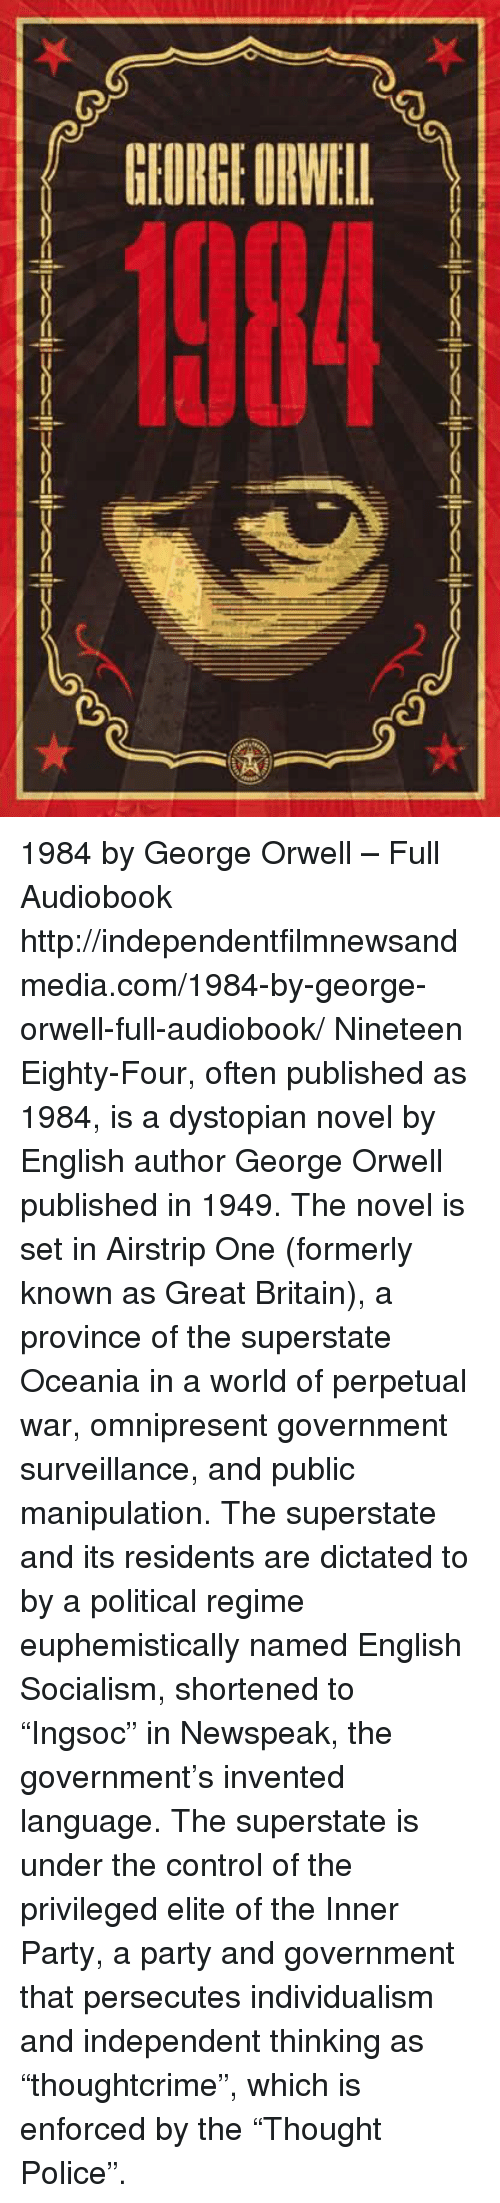 a biography of george orwell the english novelist